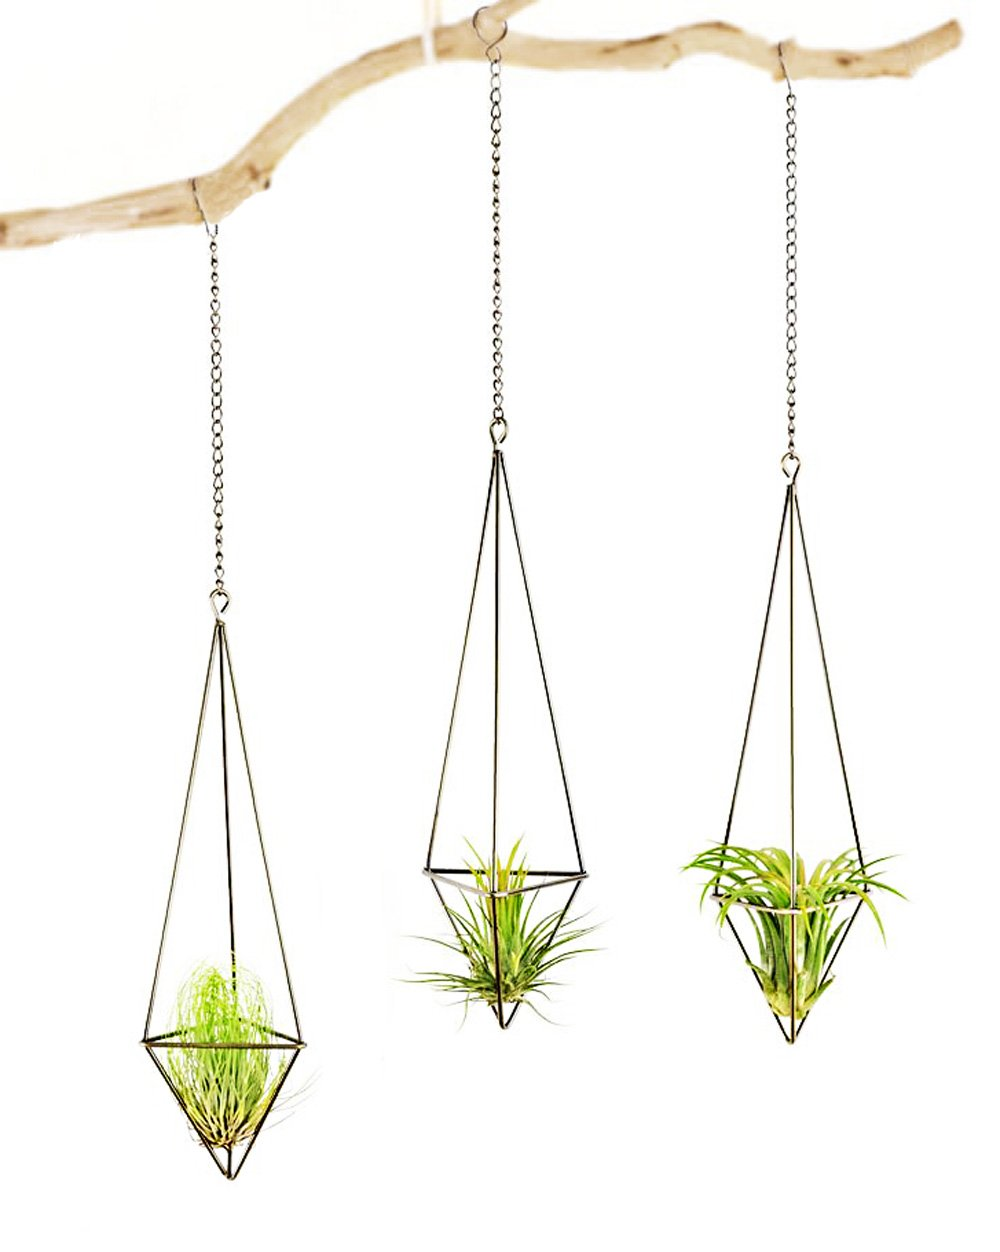 Mkono 3 Pack Hanging Air Plant Holder Himmeli for Tillandsia Airplants Display (with Chains), Bronze